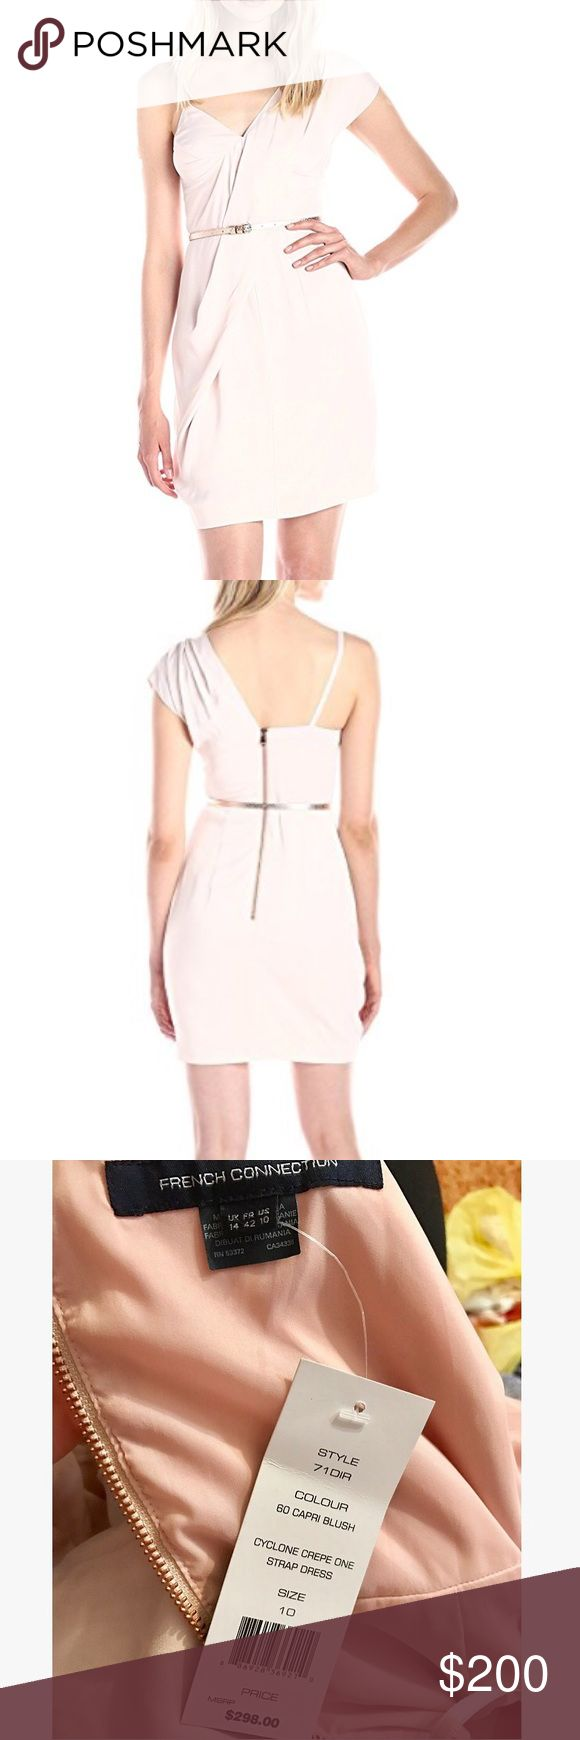 French Connection - Cyclone Crepe One Strap Dress Pale pink French Connection dress. Size US 10 but fits 8 perfectly. Has small belt hoops. Belt not included. Never worn - with tags. Brand new! French Connection Dresses Mini